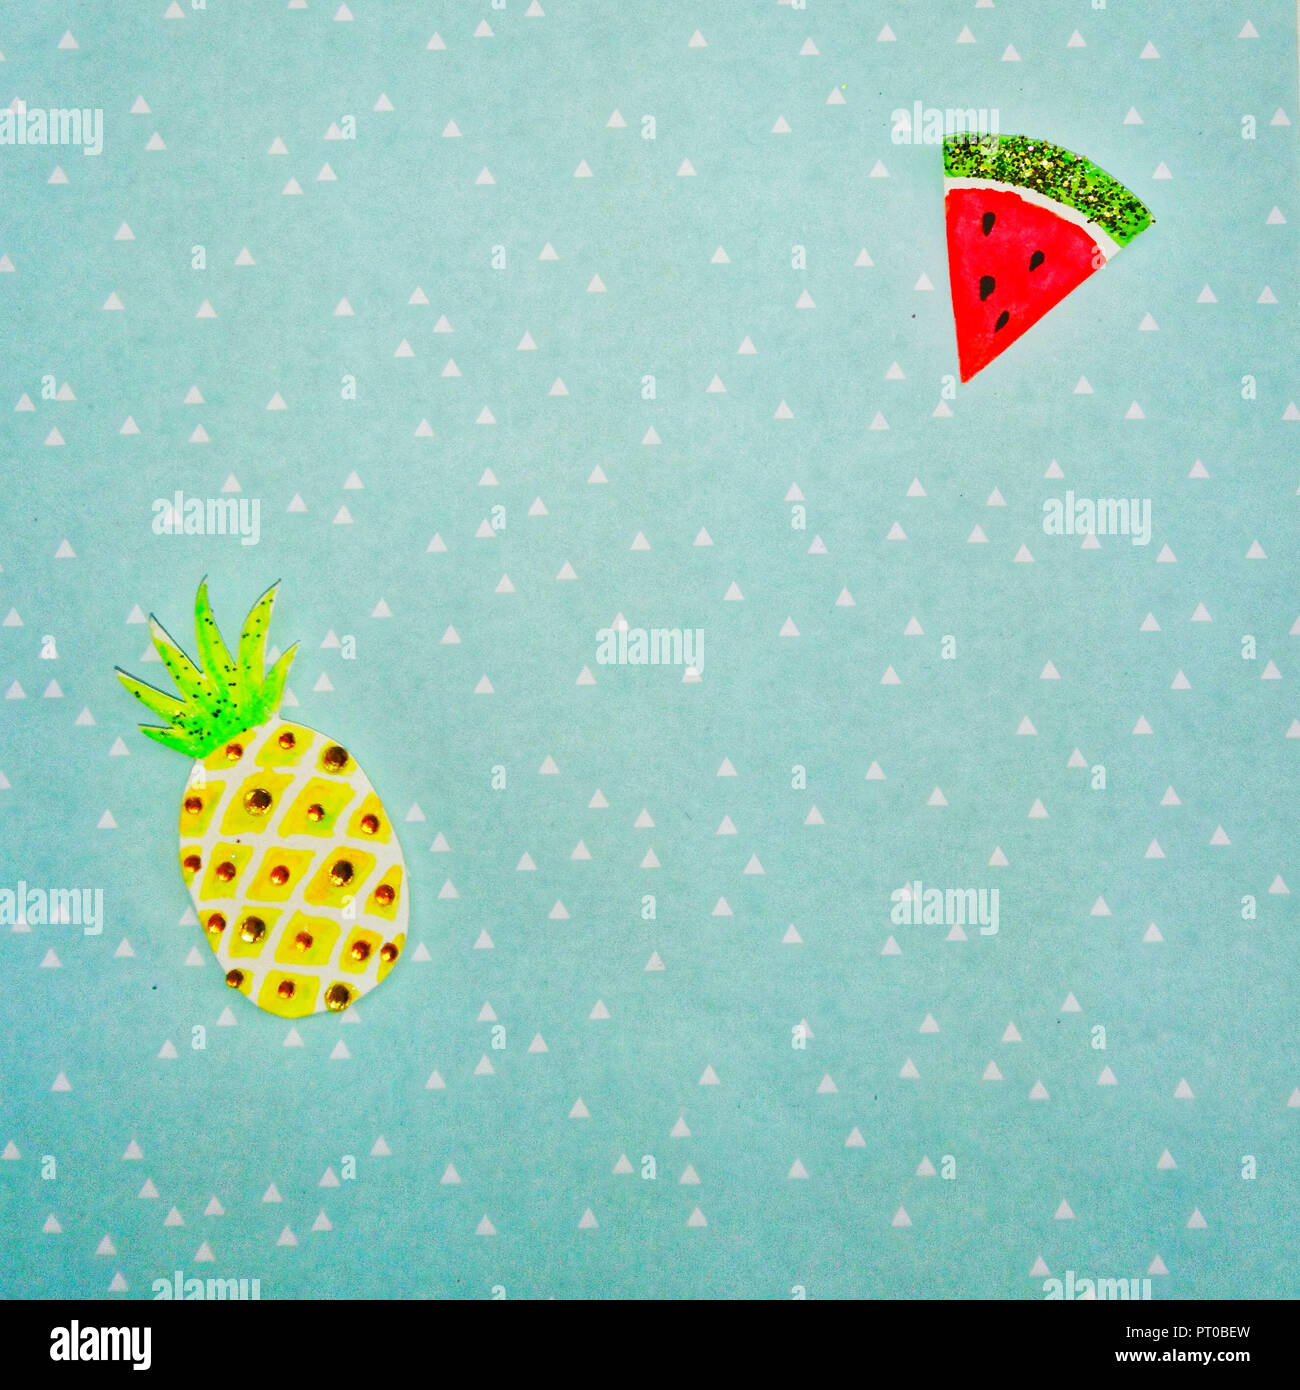 Watercolor, pineapple, melon, background, triangles - Stock Image